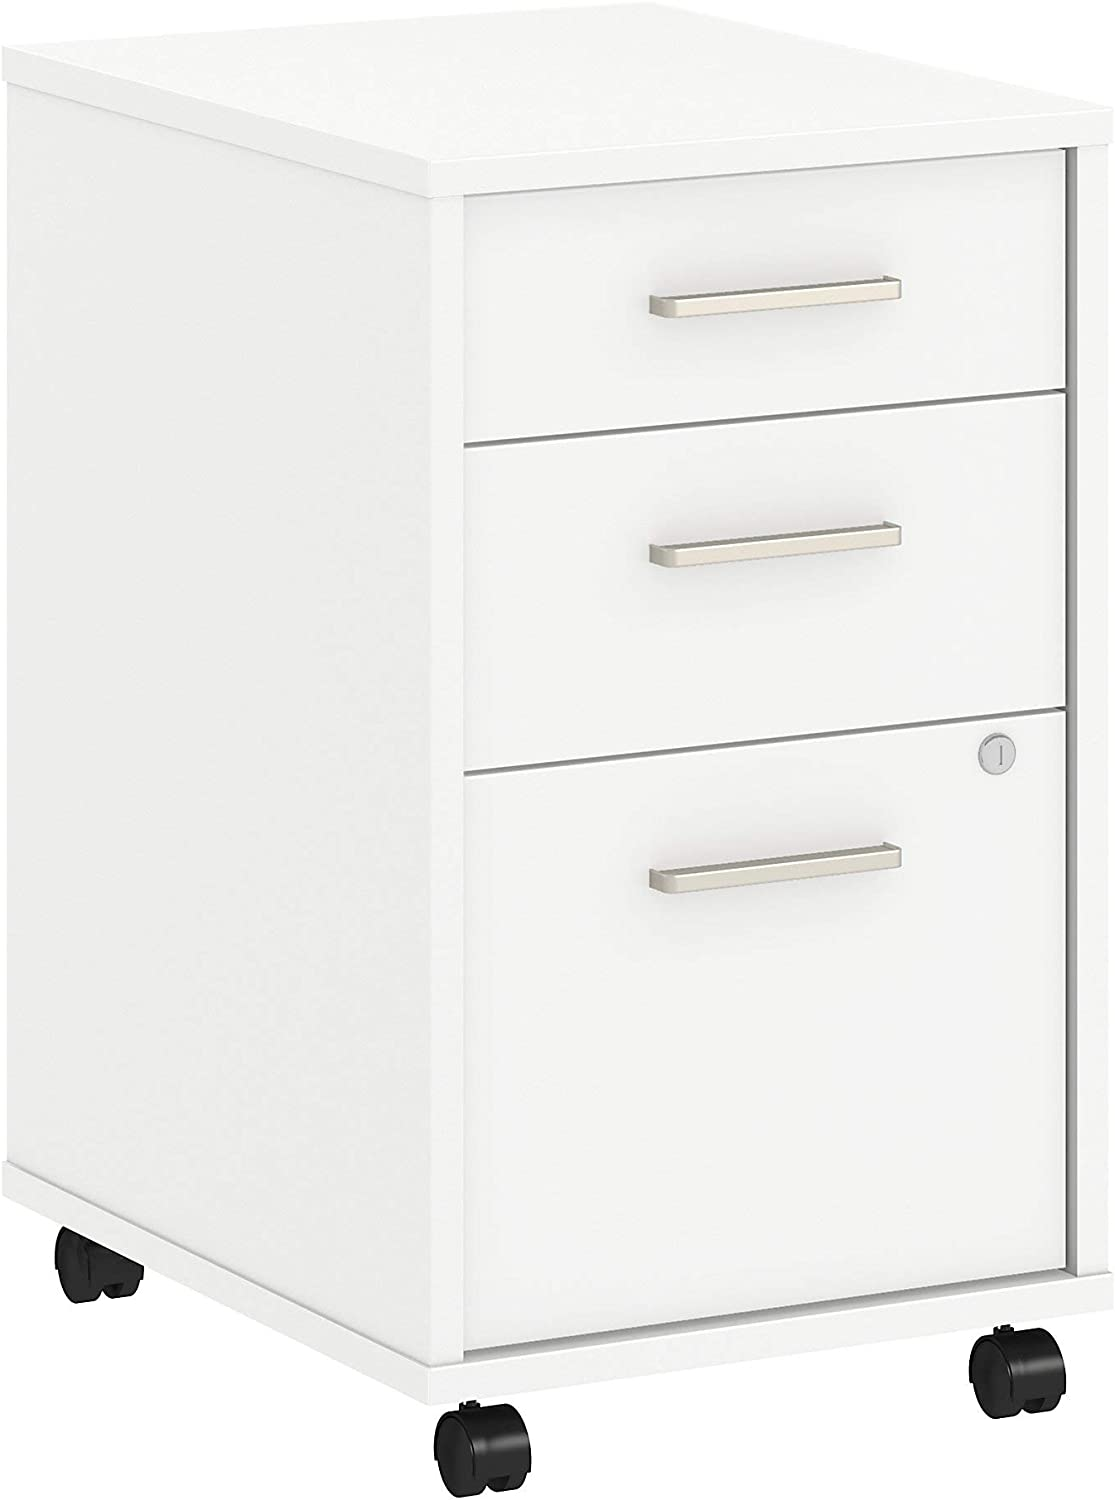 Bush Business Furniture Office by 3 Ireland Kathy 55% OFF Drawer Method Shipping included